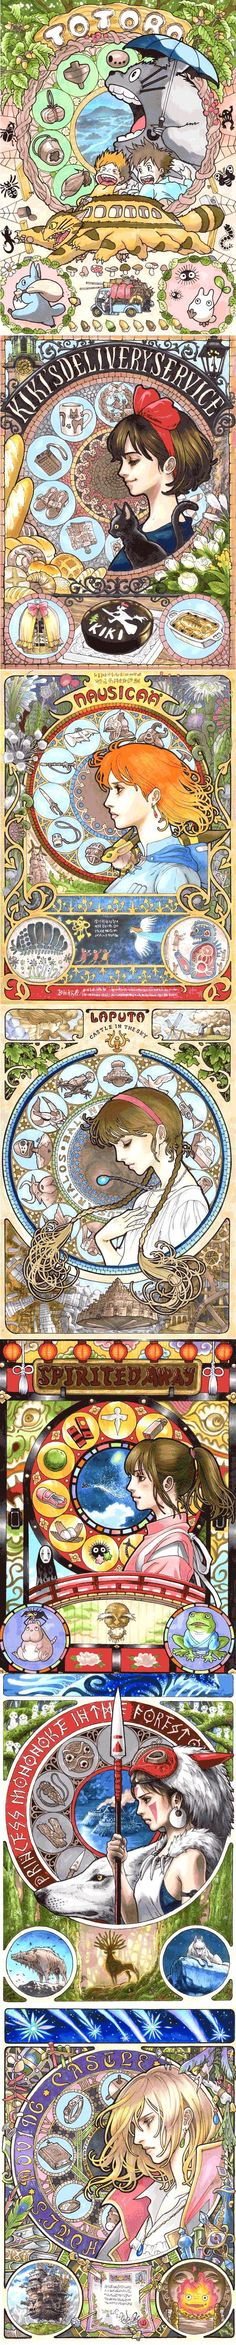 Studio Ghibli's Greatest Works Drawn In Art Nouveau http://xn--80aapkabjcvfd4a0a.xn--p1acf/2017/01/23/studio-ghiblis-greatest-works-drawn-in-art-nouveau/  #animegirl  #animeeyes  #animeimpulse  #animech#ar#acters  #animeh#aven  #animew#all#aper  #animetv  #animemovies  #animef#avor  #anime#ames  #anime  #animememes  #animeexpo  #animedr#awings  #ani#art  #ani#av#at#arcr#ator  #ani#angel  #ani#ani#als  #ani#aw#ards  #ani#app  #ani#another  #ani#amino  #ani#aesthetic  #ani#amer#a  #animeboy…